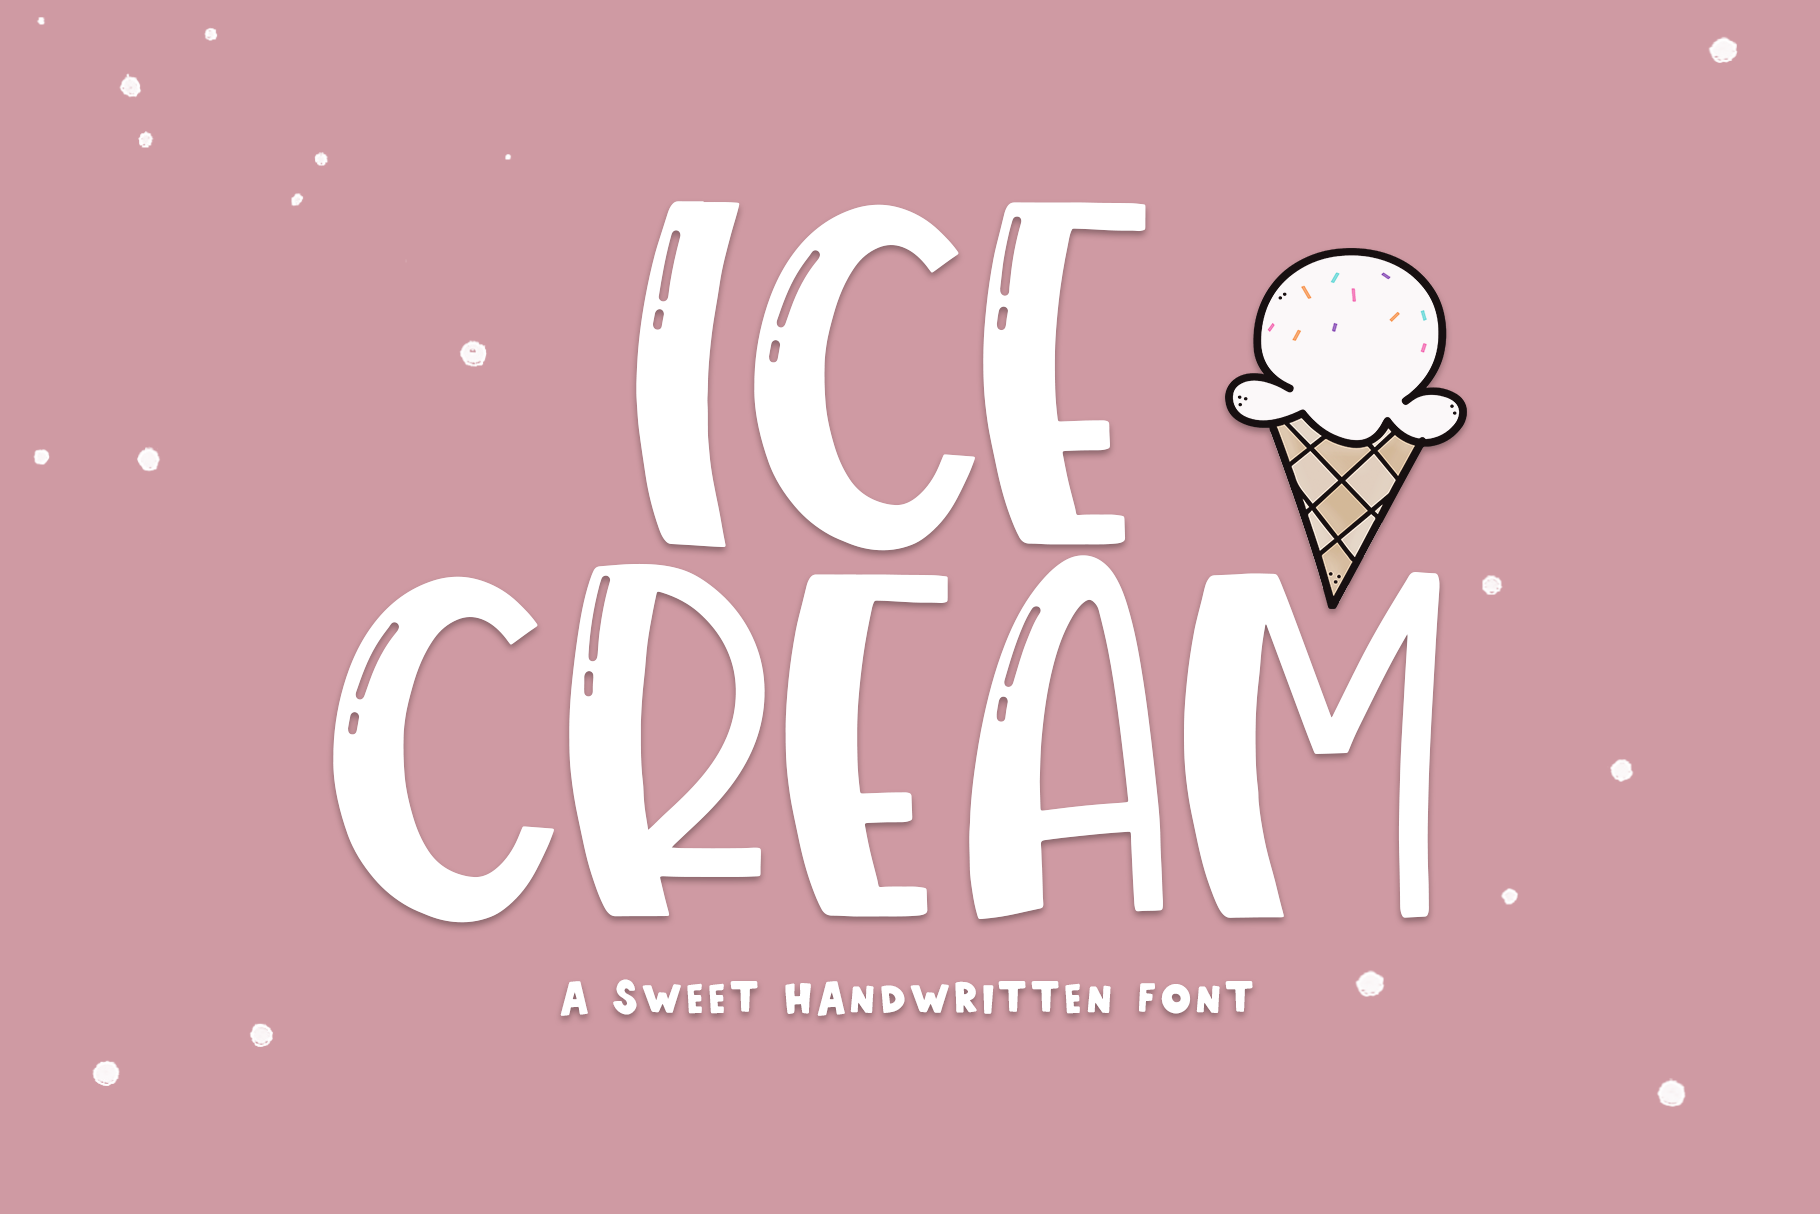 Ice Cream A Quirky Handwritten Font By Ka Designs